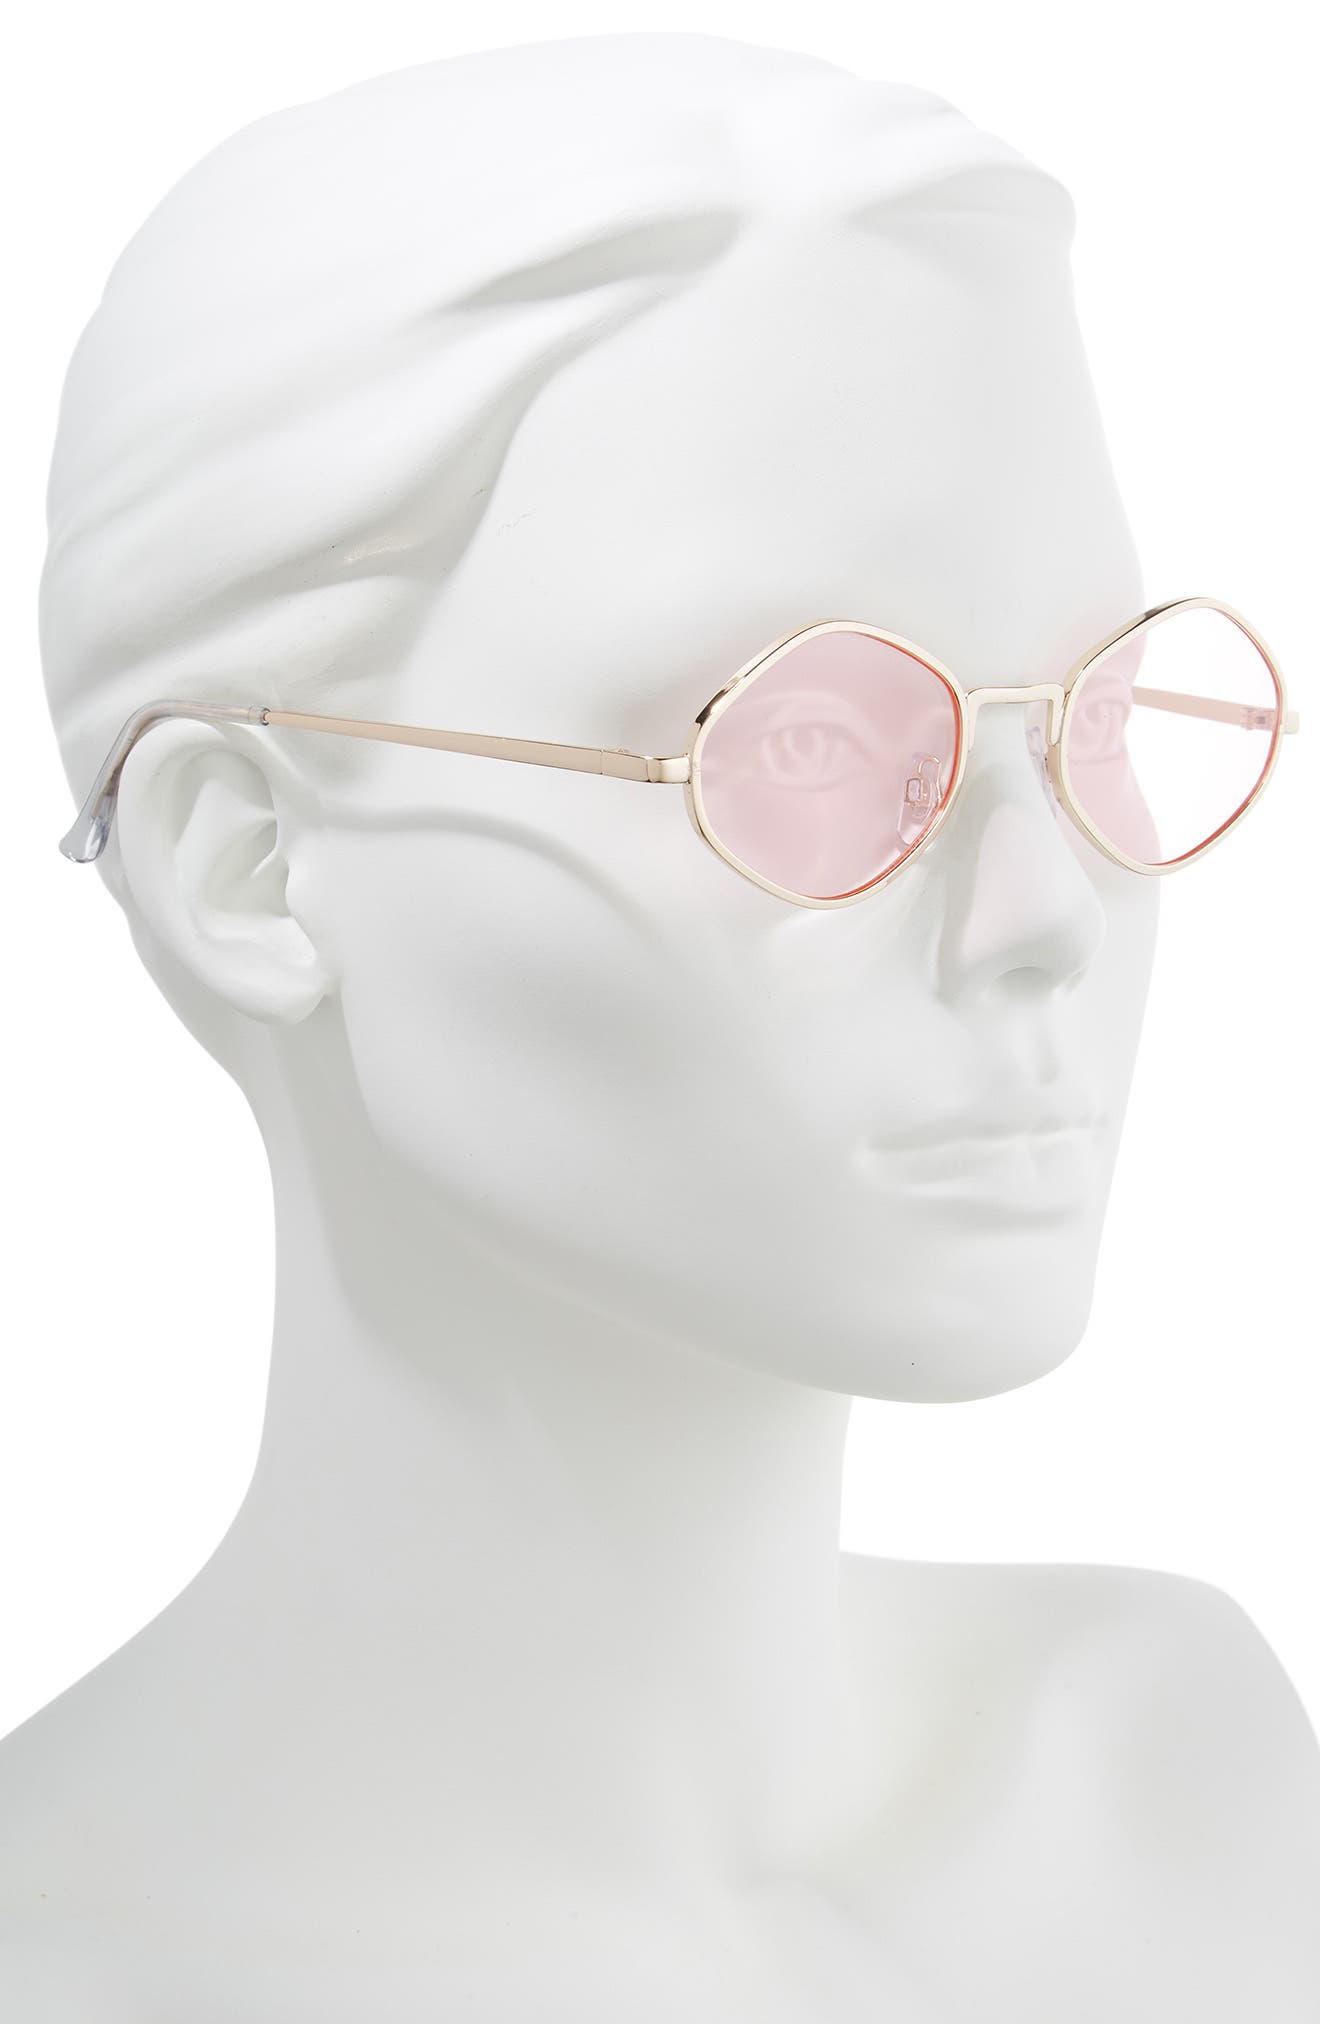 48mm Small Geo Sunglasses,                             Alternate thumbnail 2, color,                             GOLD PINK